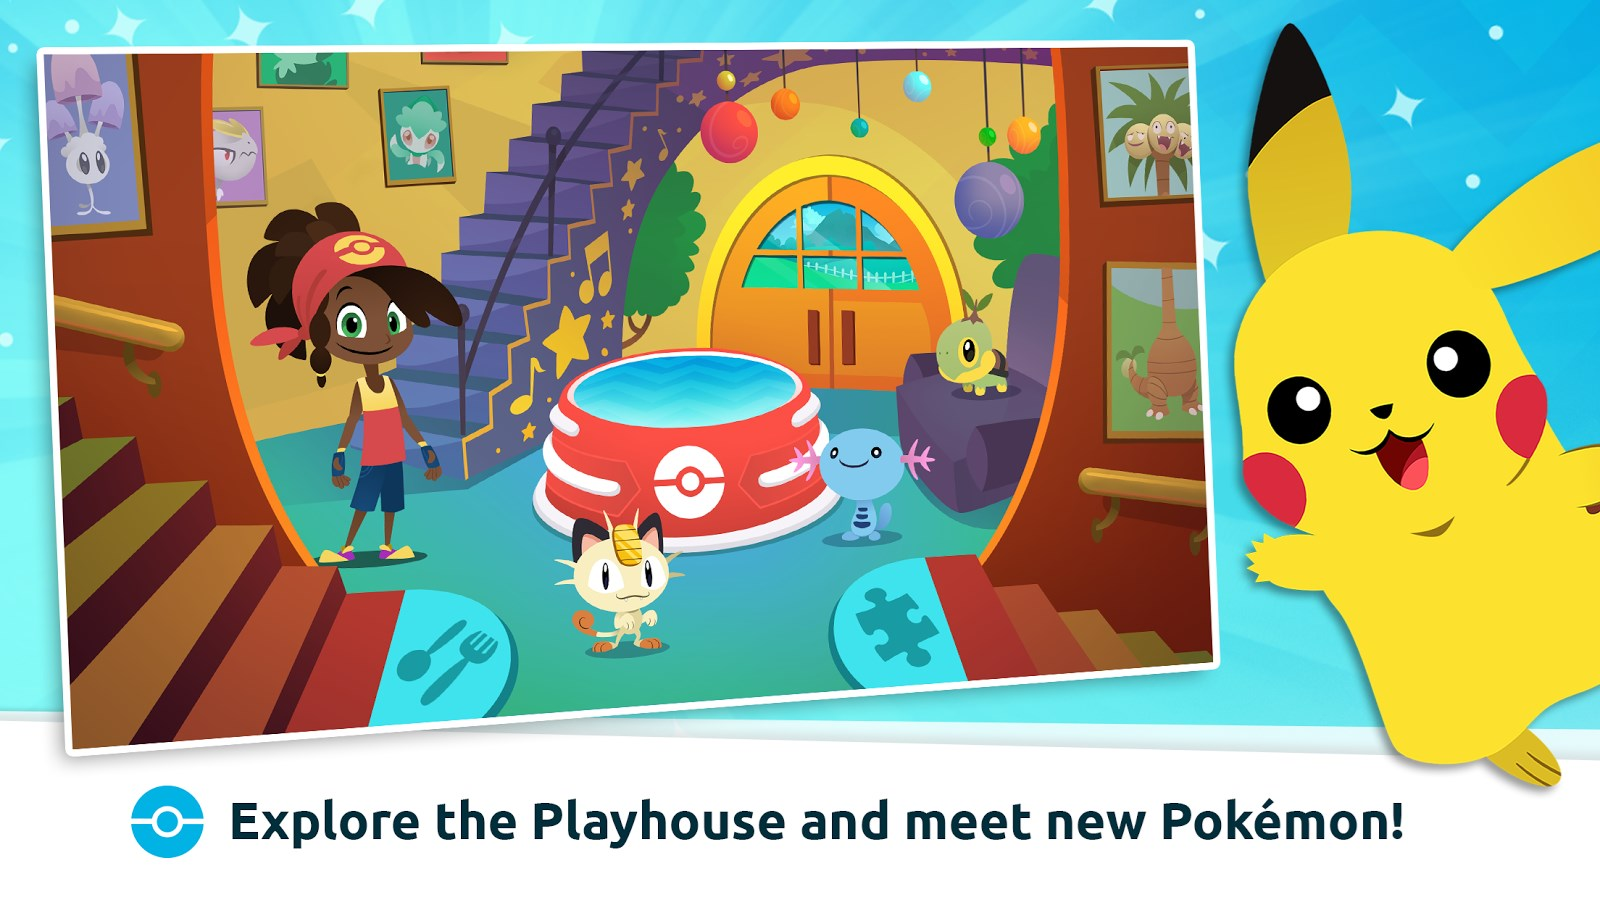 Pokémon Playhouse - Imagem 1 do software